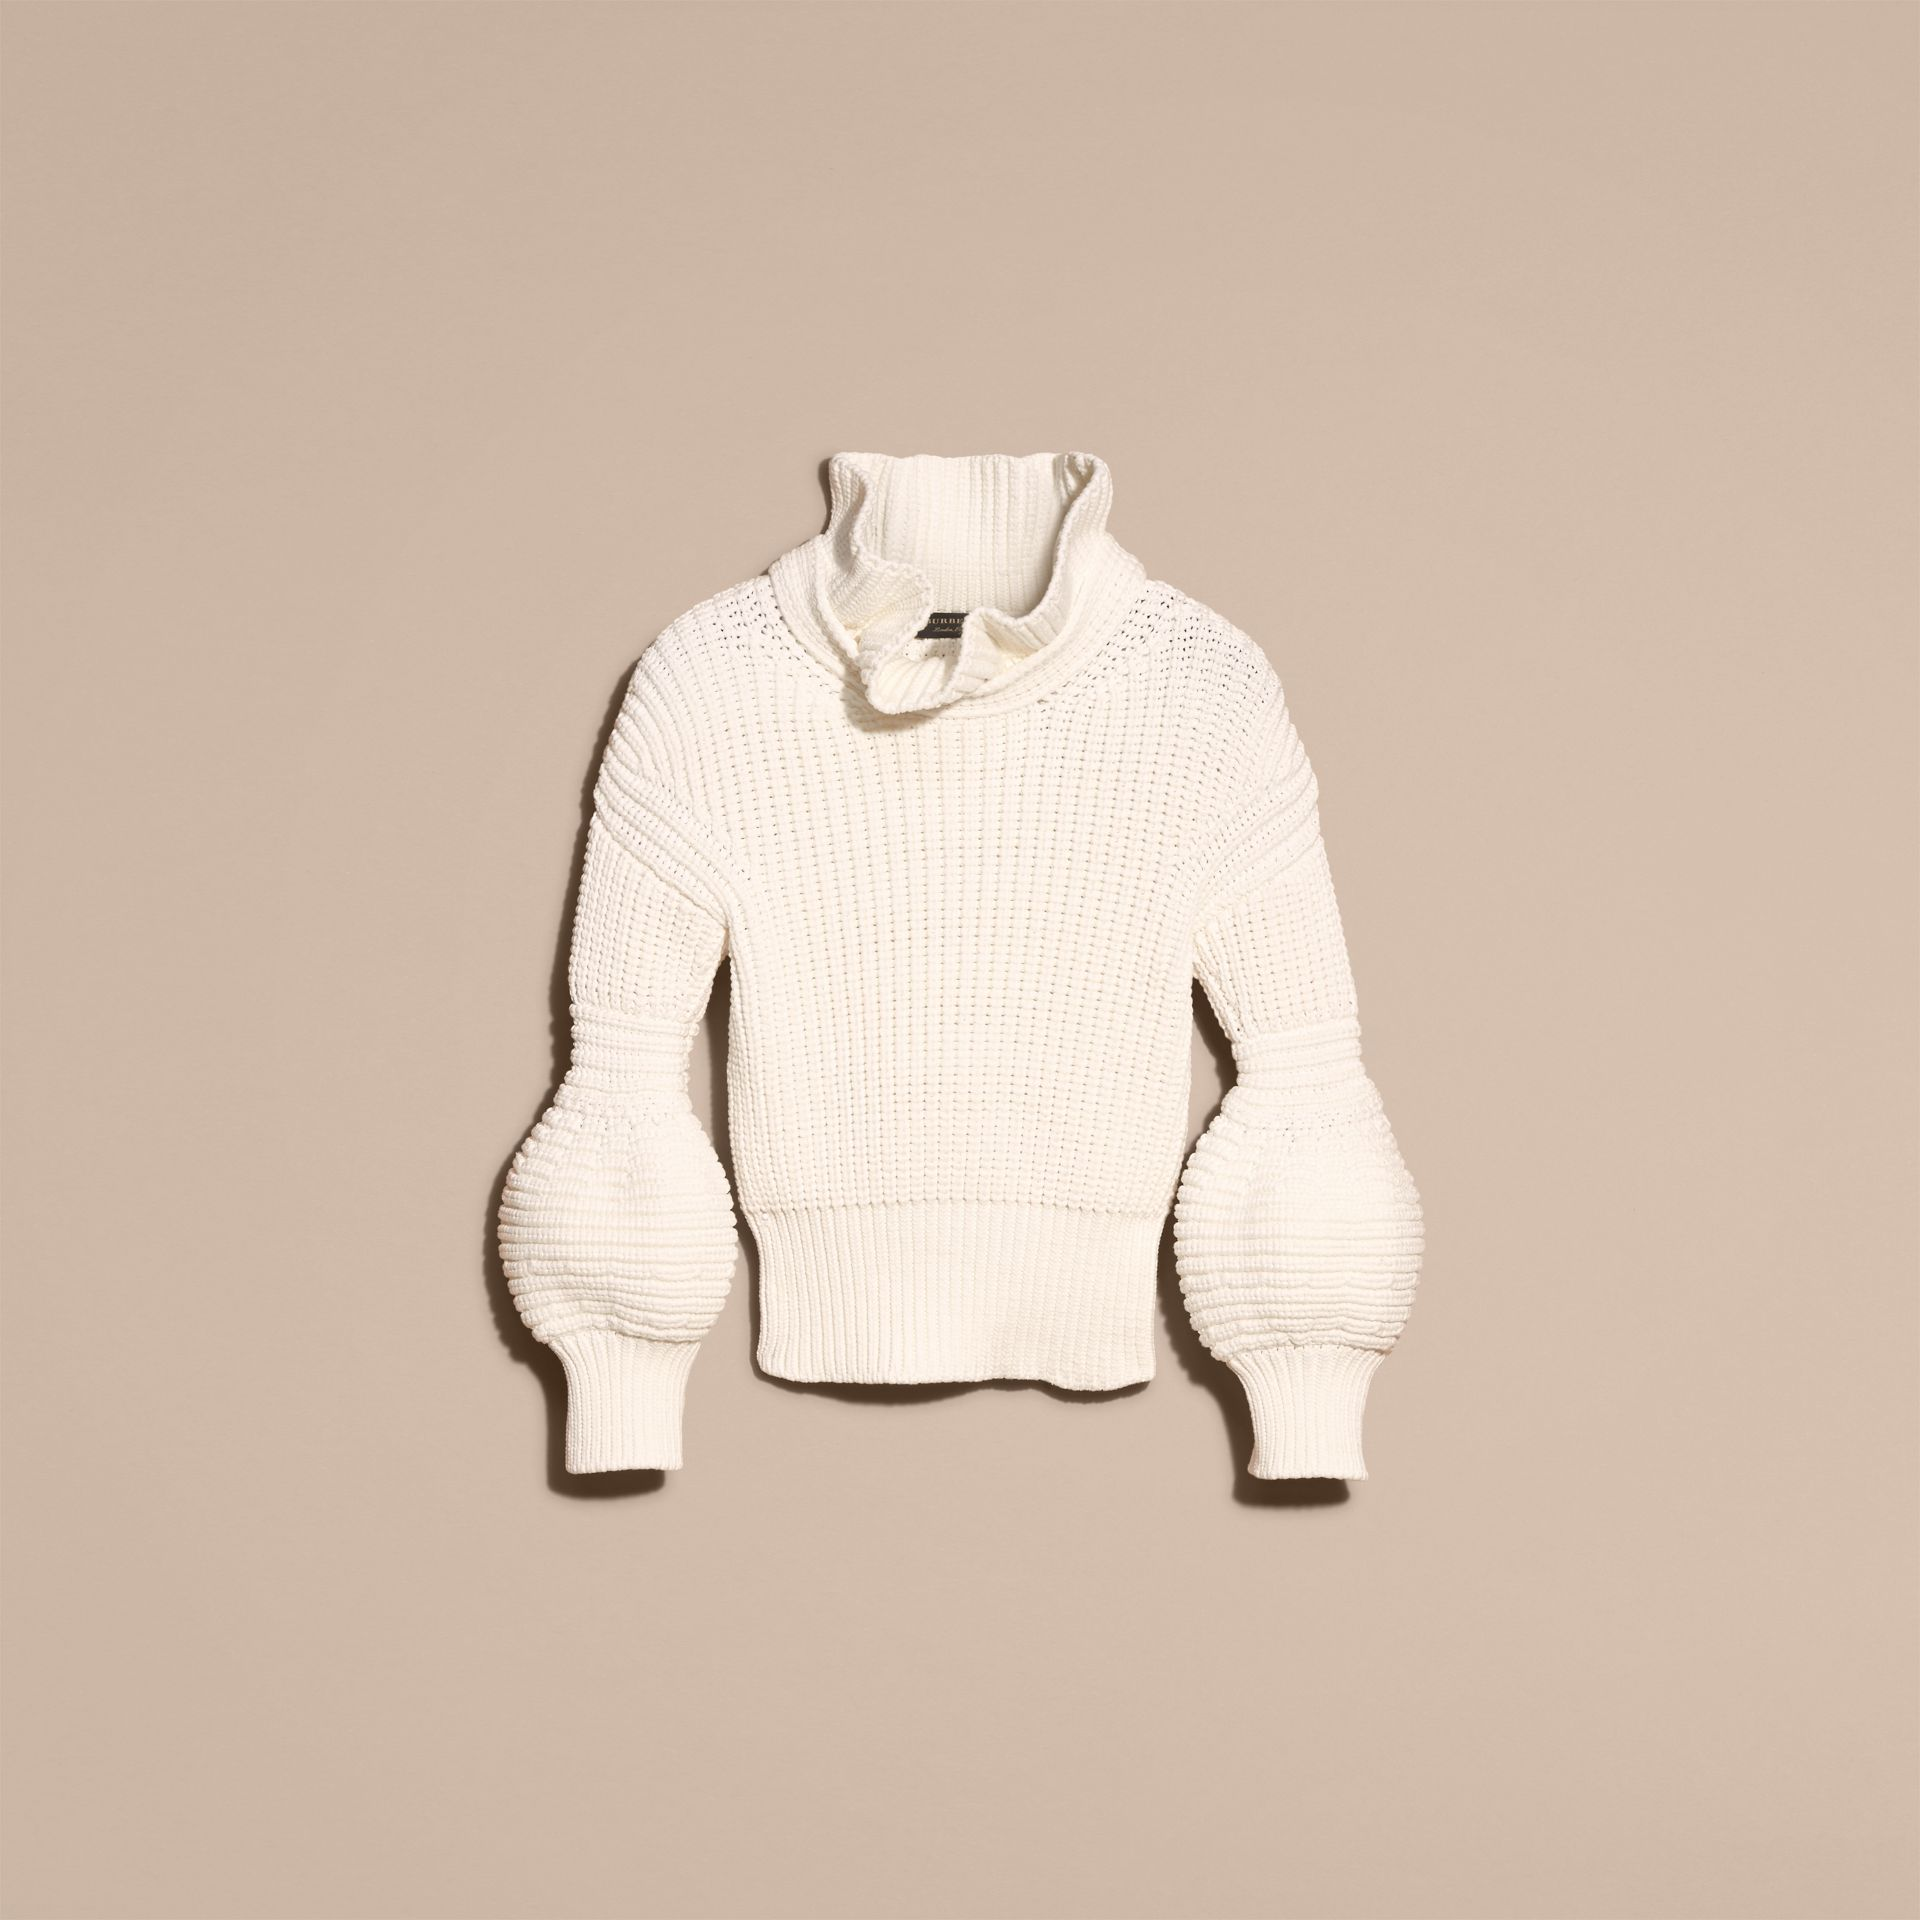 White Cotton Blend Sweater with Ruff Neck - gallery image 4